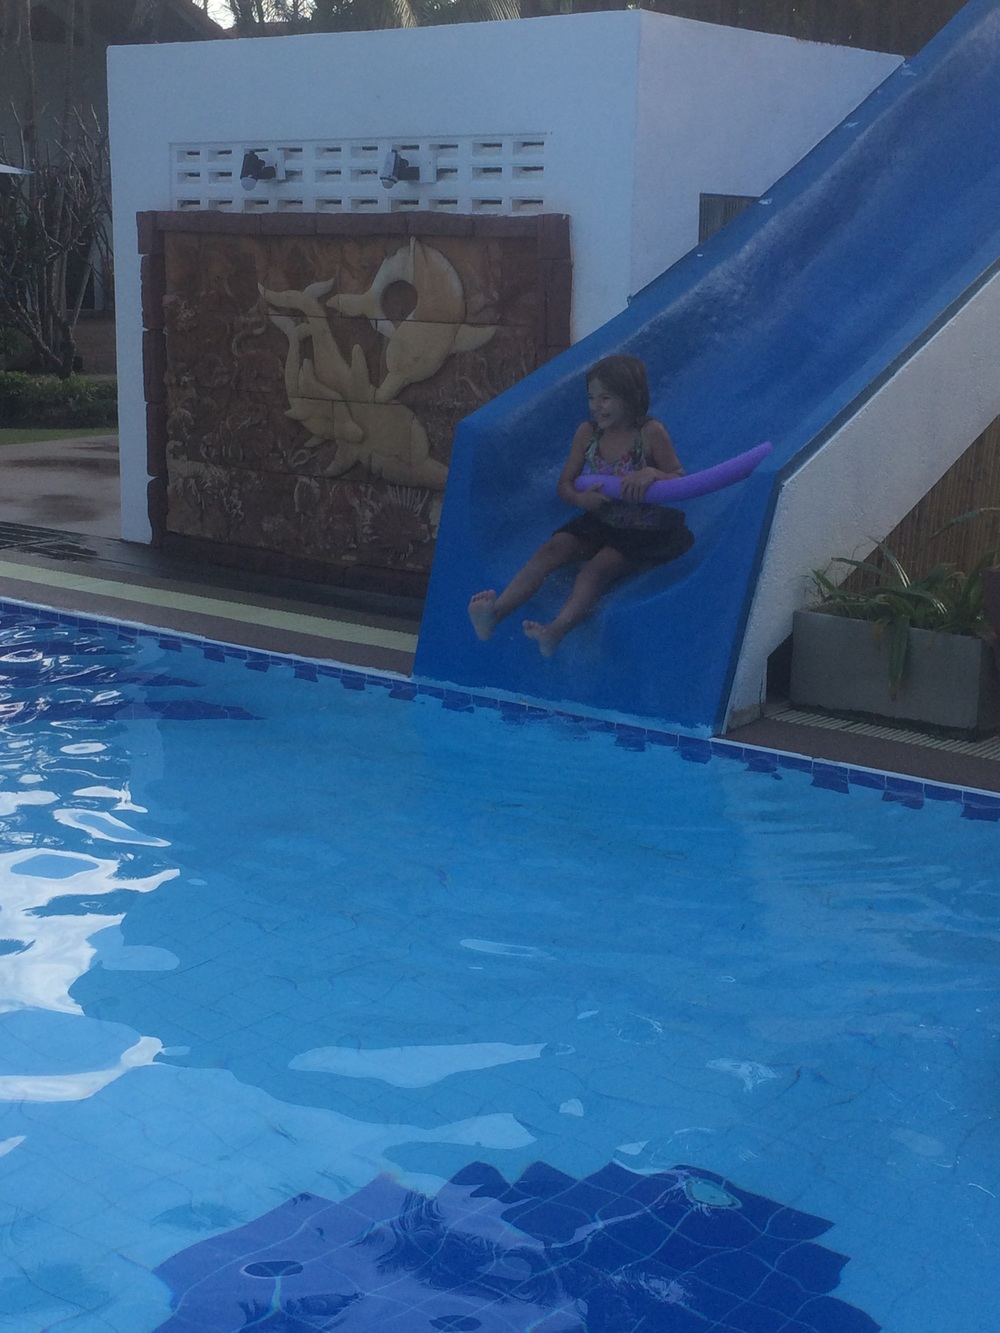 Another Hannah going down the water slide pic!